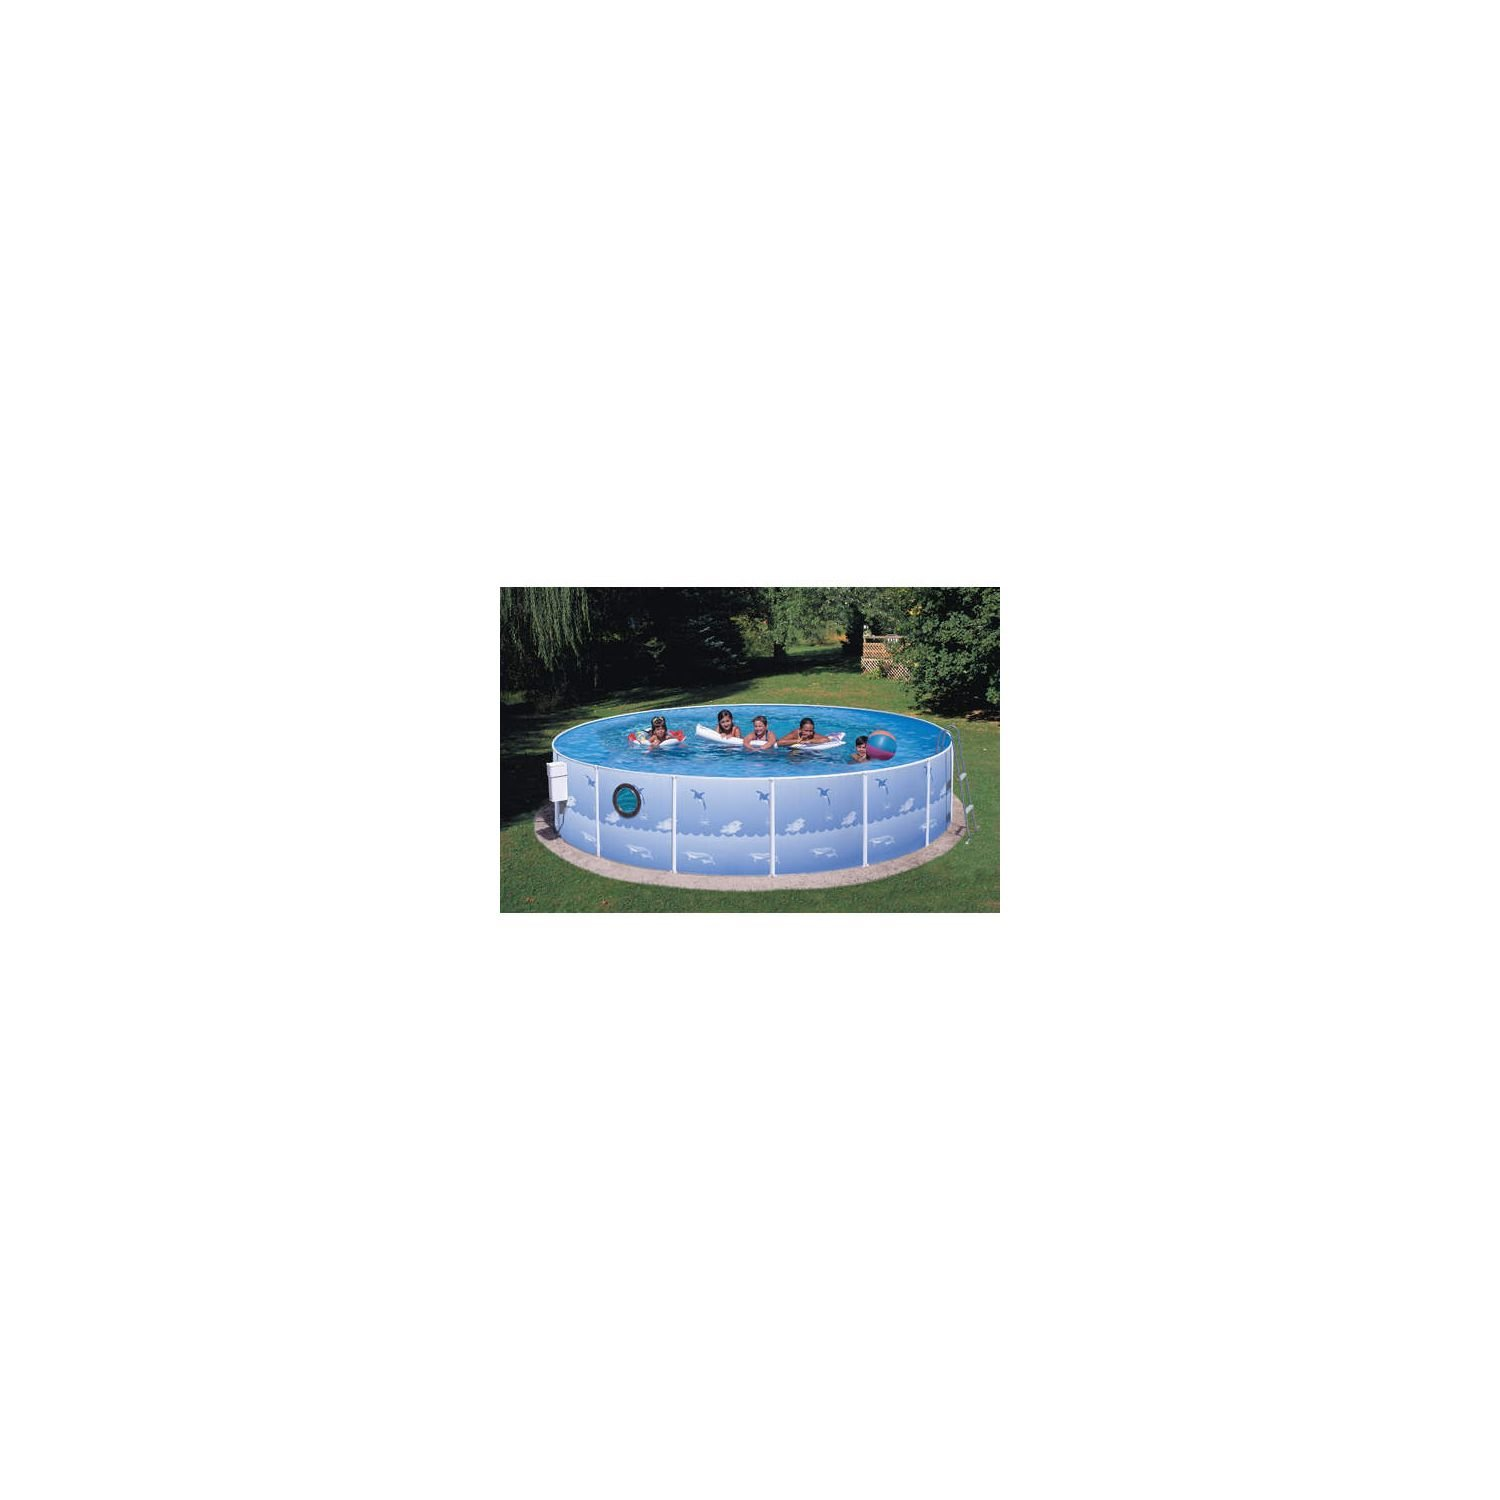 "Sun 'n' Fun 12' x 36"" Steel Pool with Porthole"